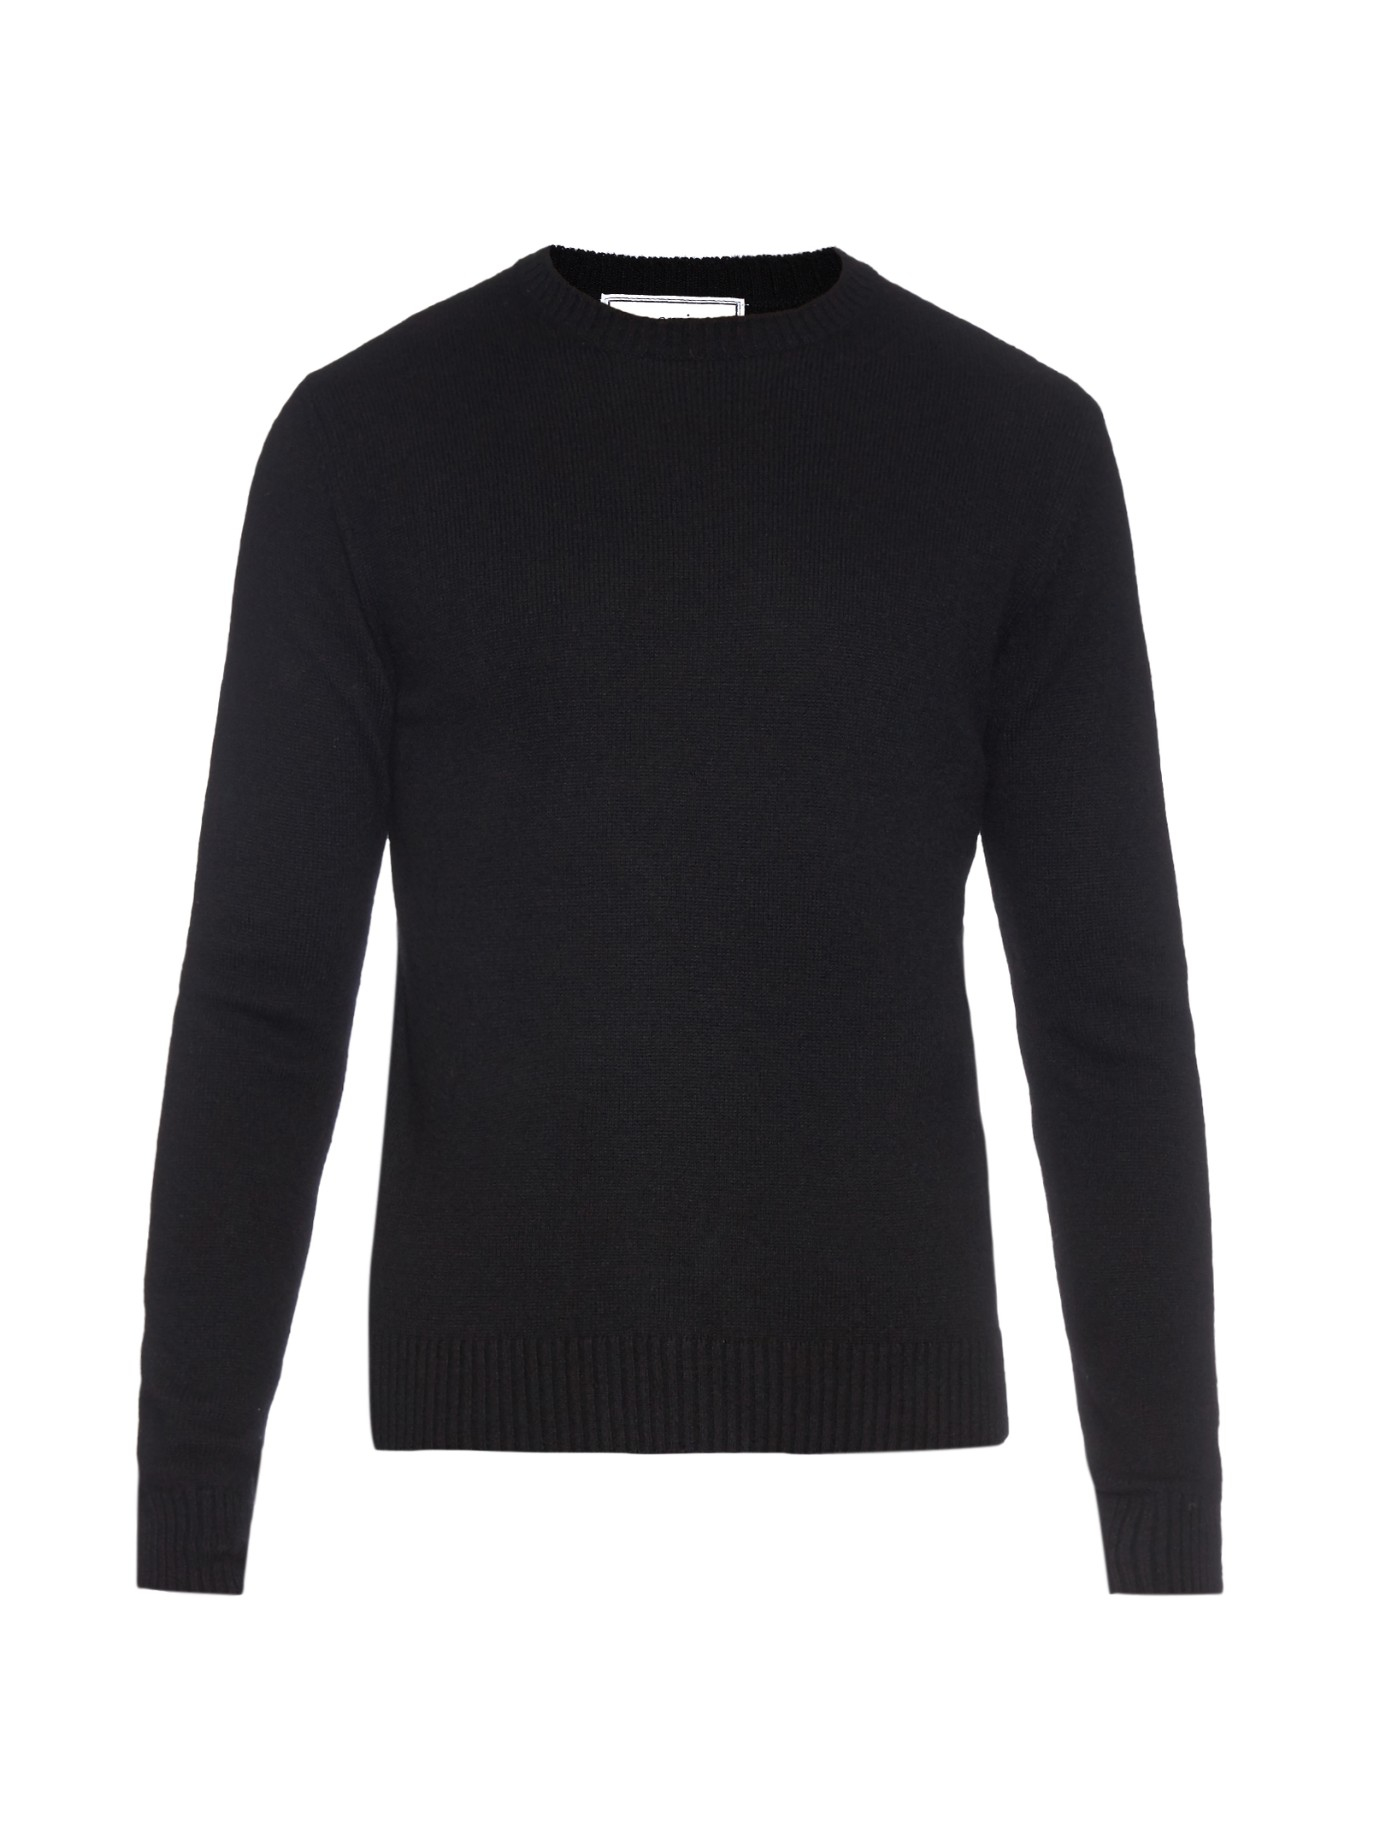 Ami Crew-neck Wool-knit Sweater in Black for Men | Lyst